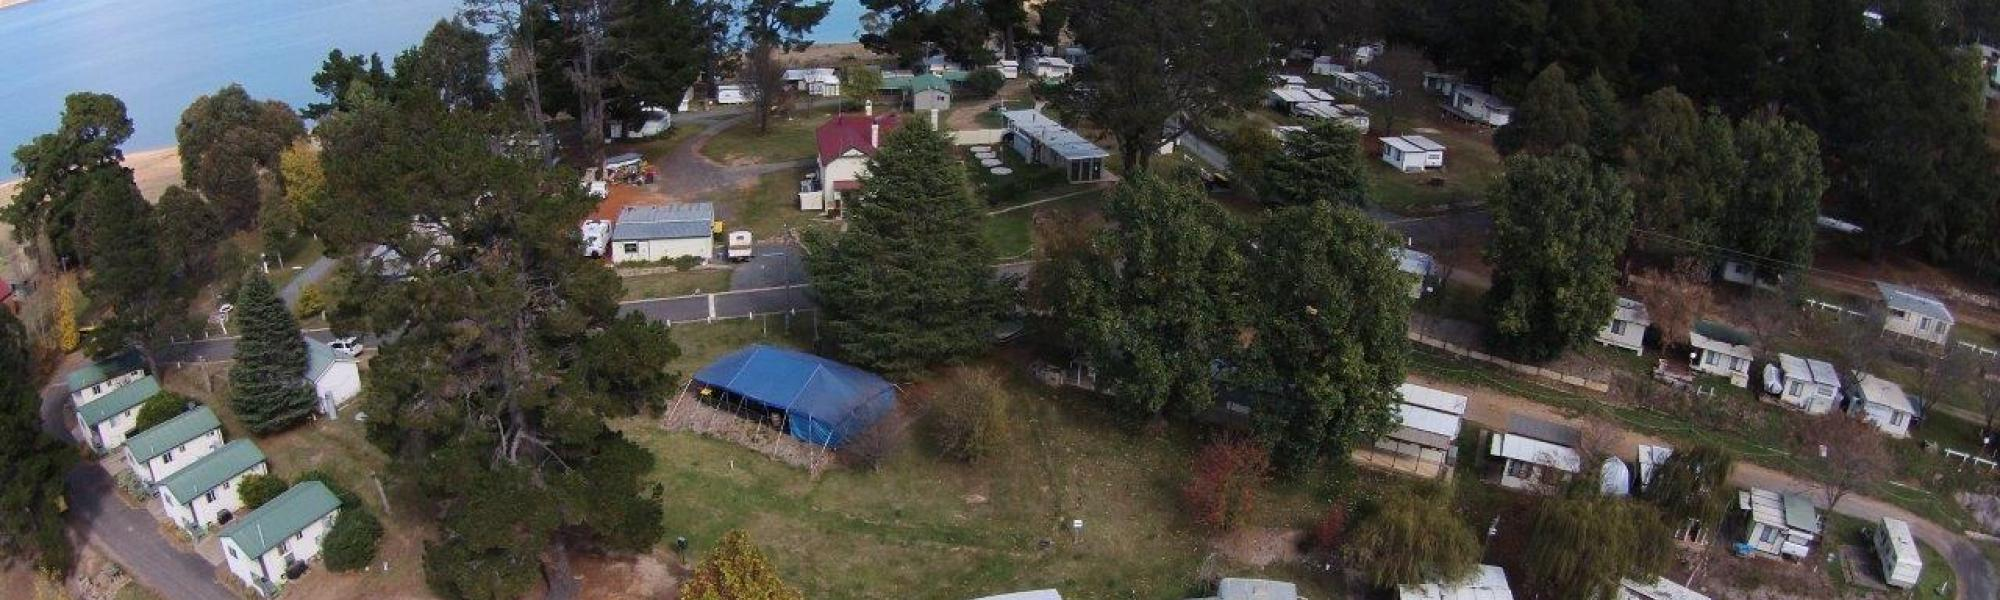 Rainbow Pines Caravan Park in the Heart of the Snowy Moutains